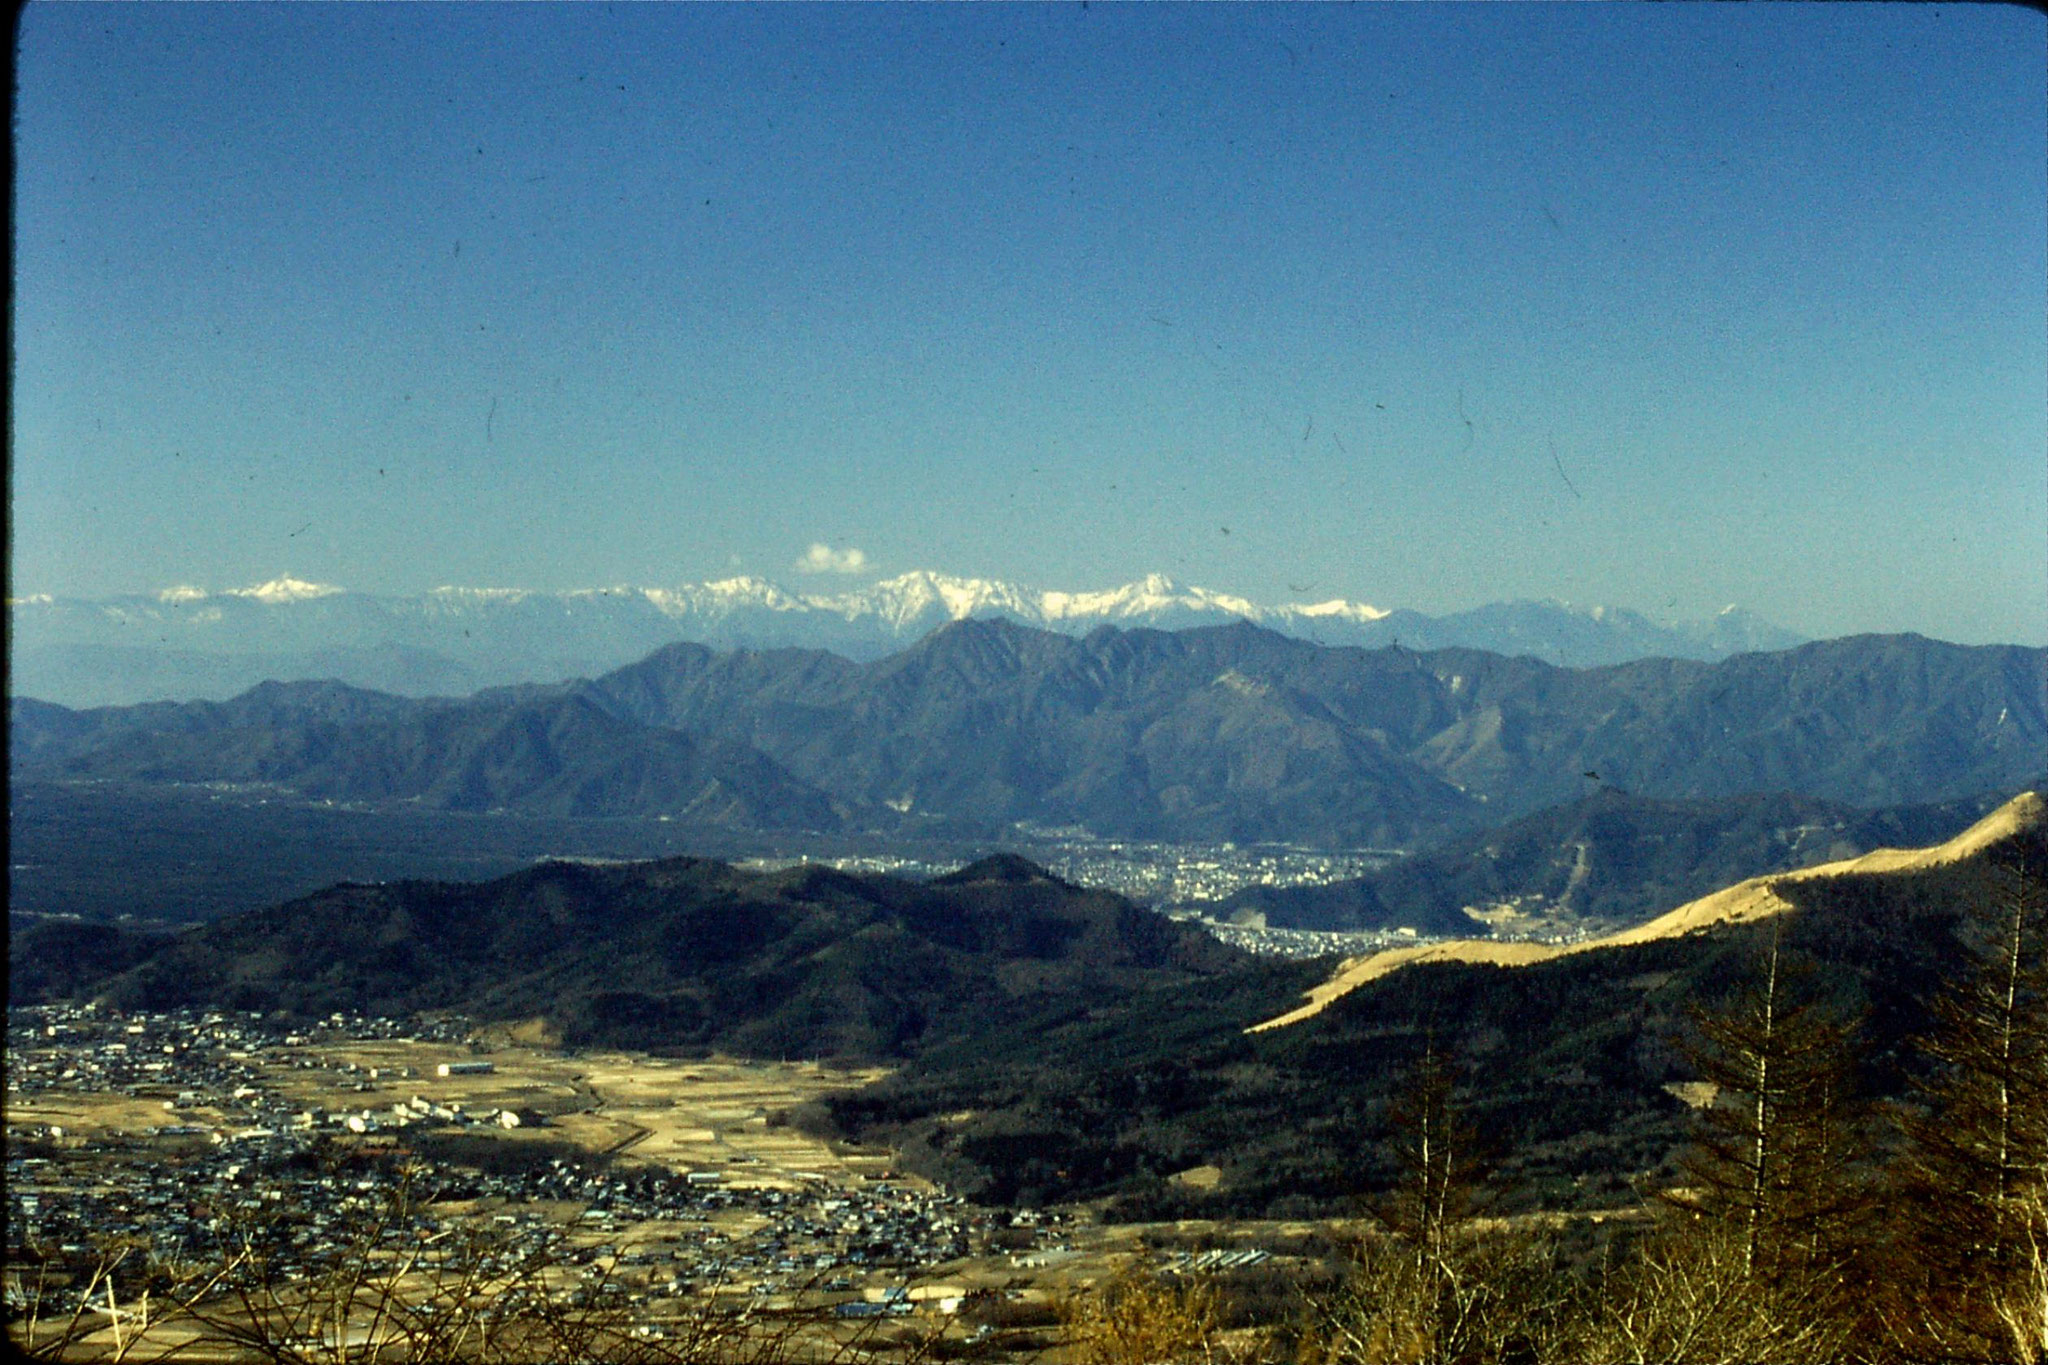 31/12/1988: 10: view across Five Lake area